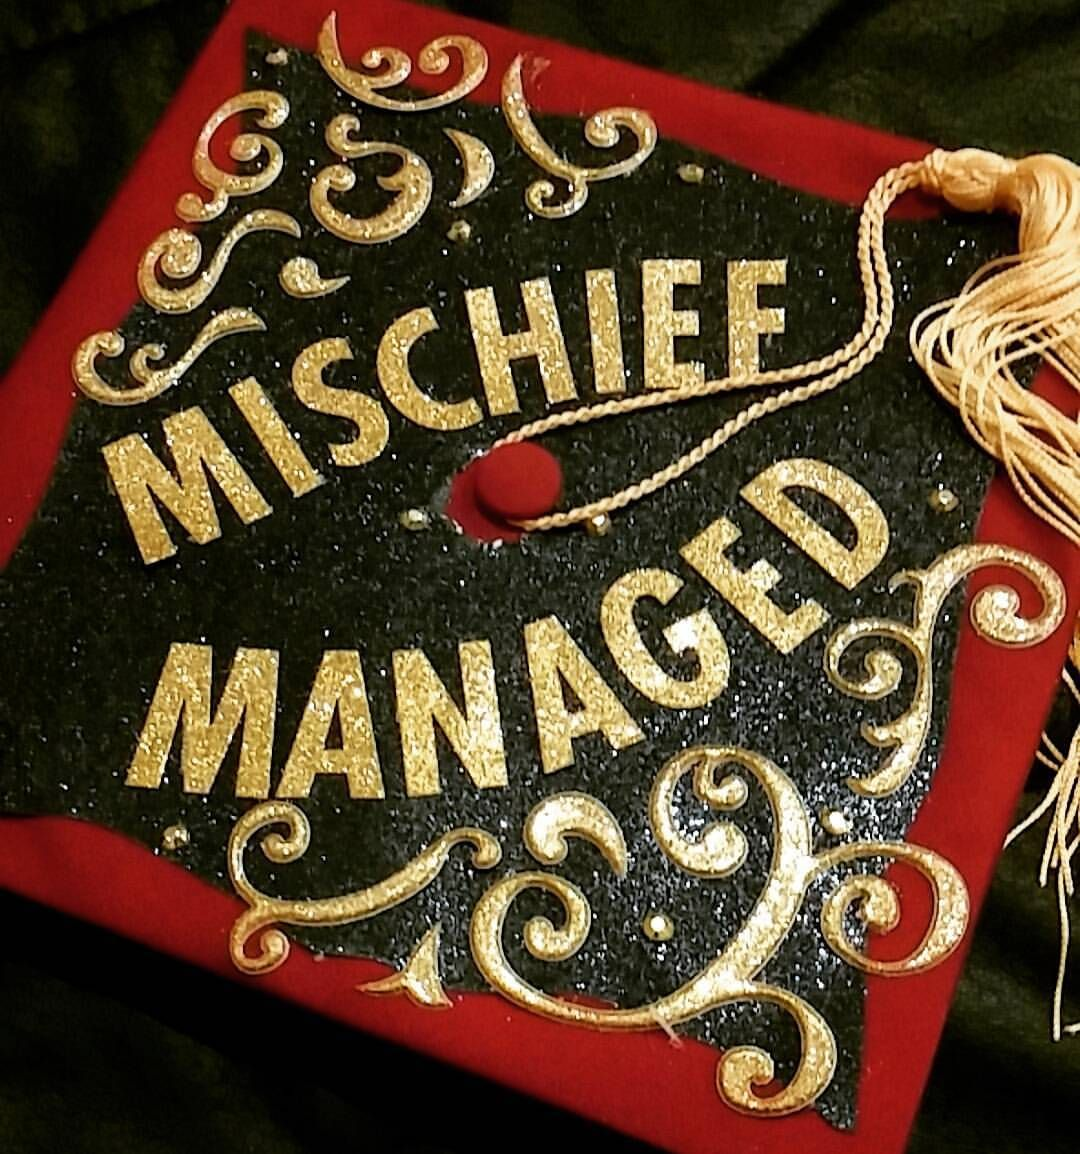 Instead Of Mischief I Ll Put Masters Totally Stole That Idea From An Old Friend Harry Potter Graduation Harry Potter Graduation Cap Graduation Cap Designs